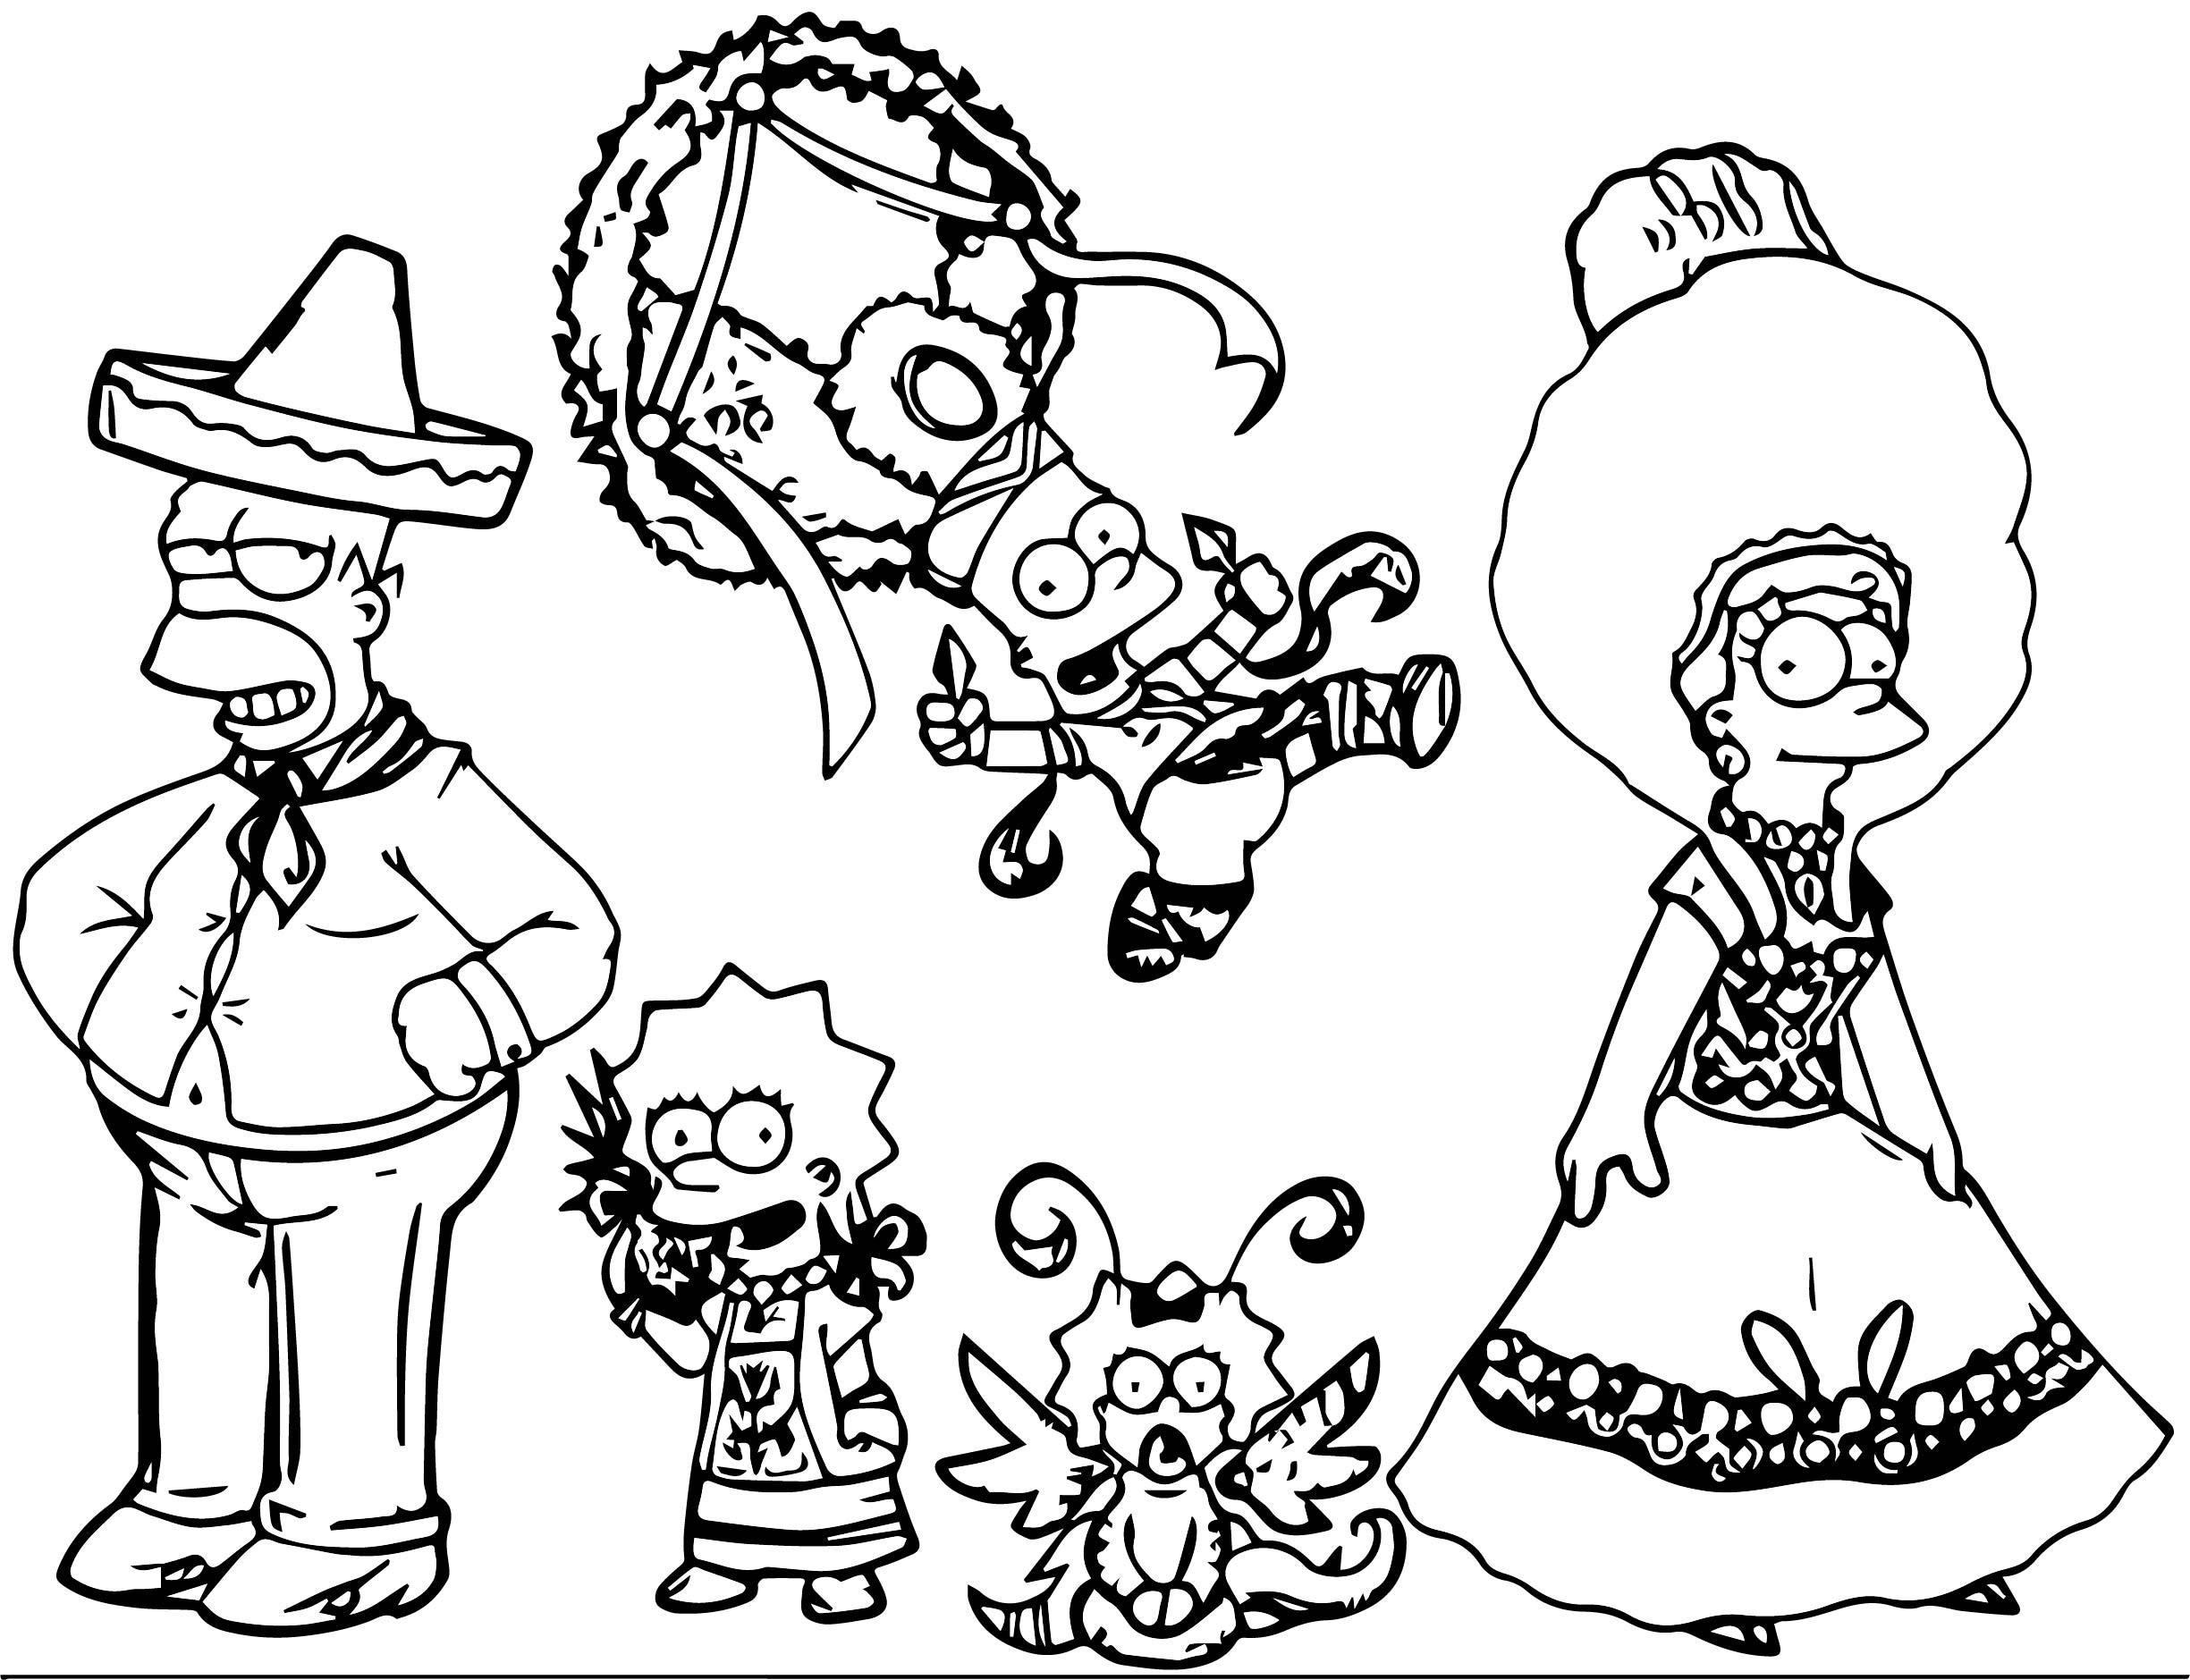 The Simpsons Coloring Page 223